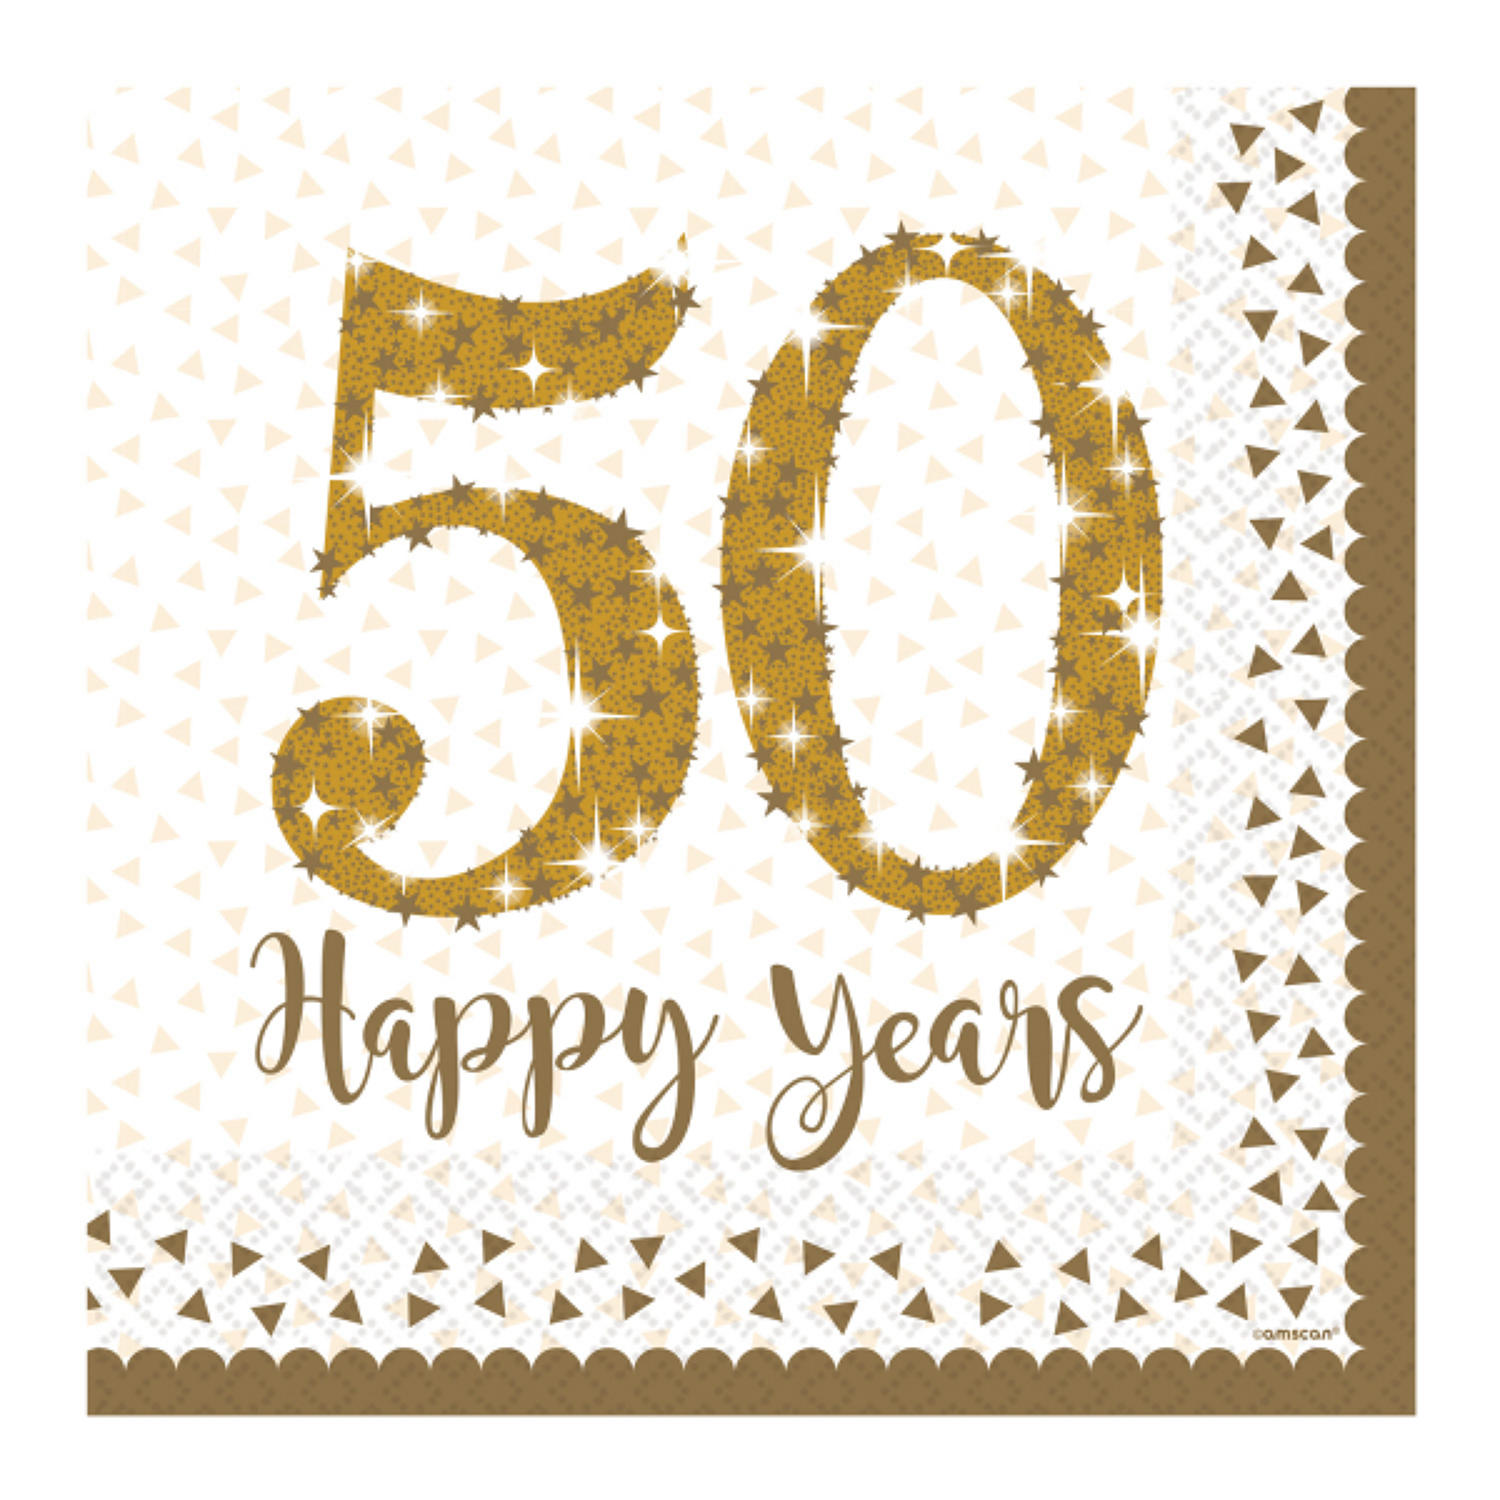 50 Happy Years Serviettes